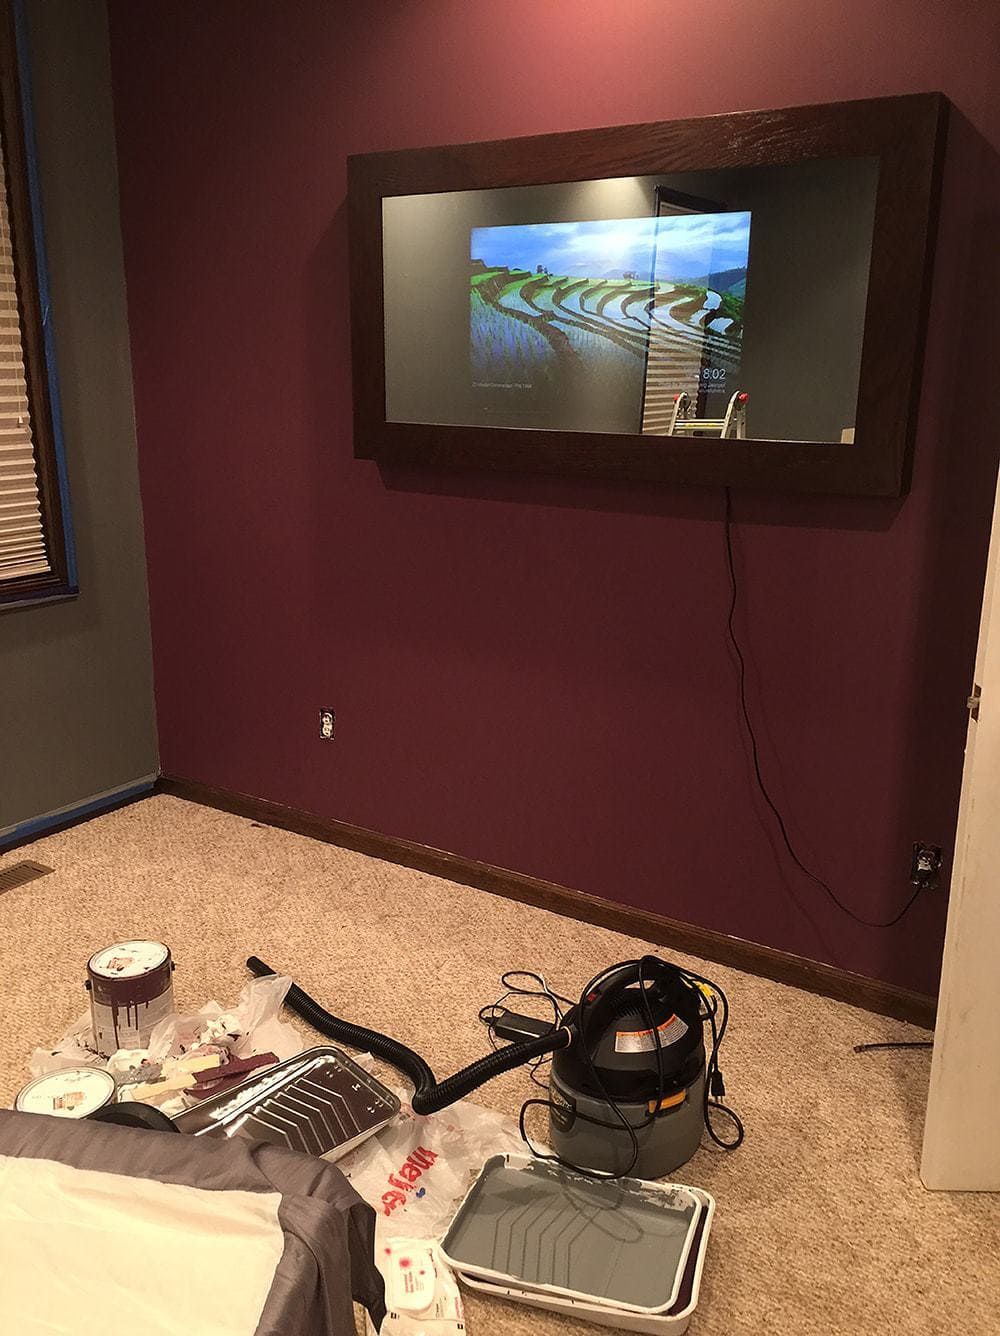 Finished Diy Led Smart Mirror Tv Two Way Mirrors